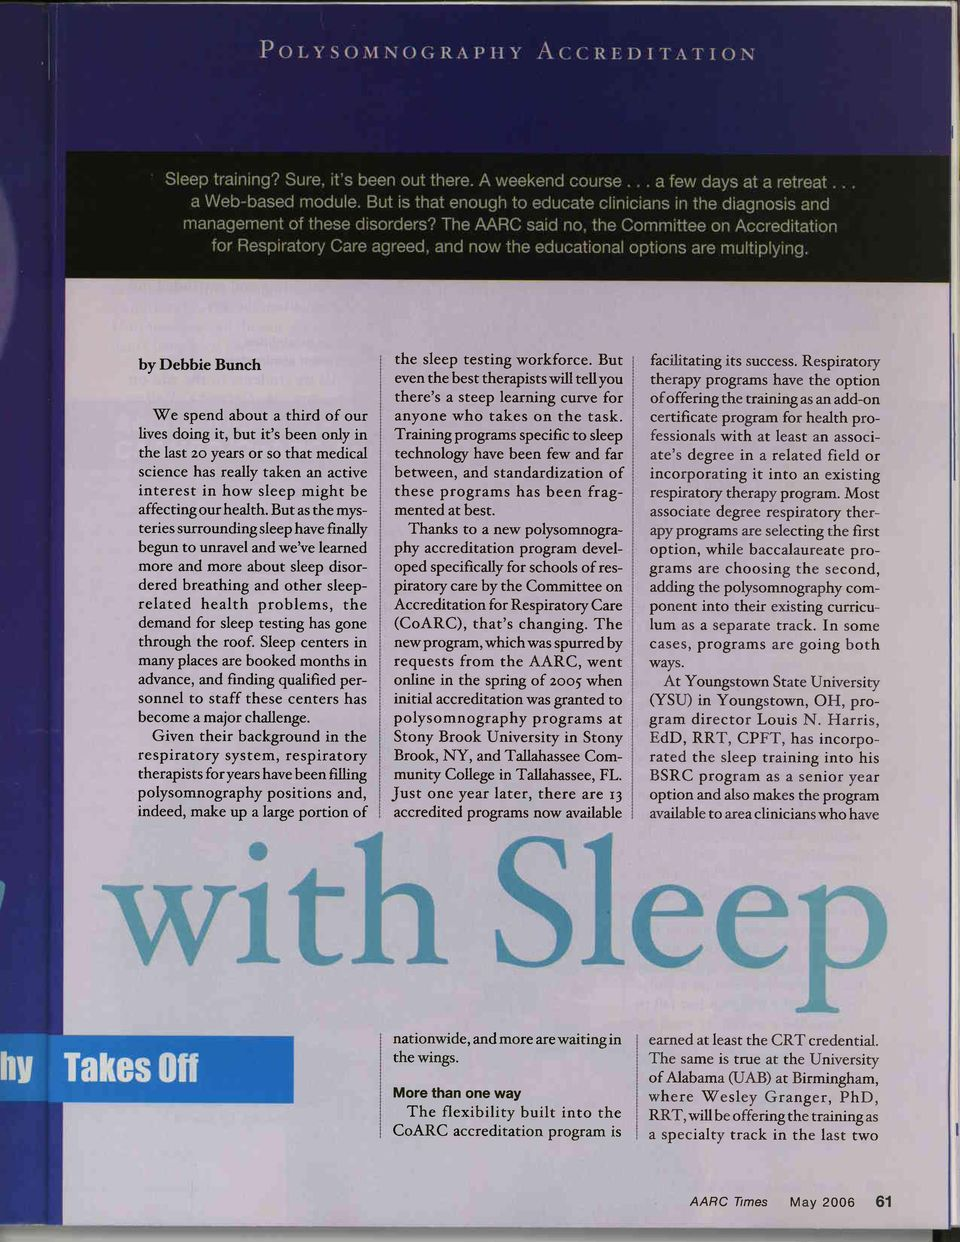 But as the mysteries surrounding sleep have finally begun to unravel and we've learned more and more about sleep disordered breathing and other sleeprelated health problems, the demand for sleep